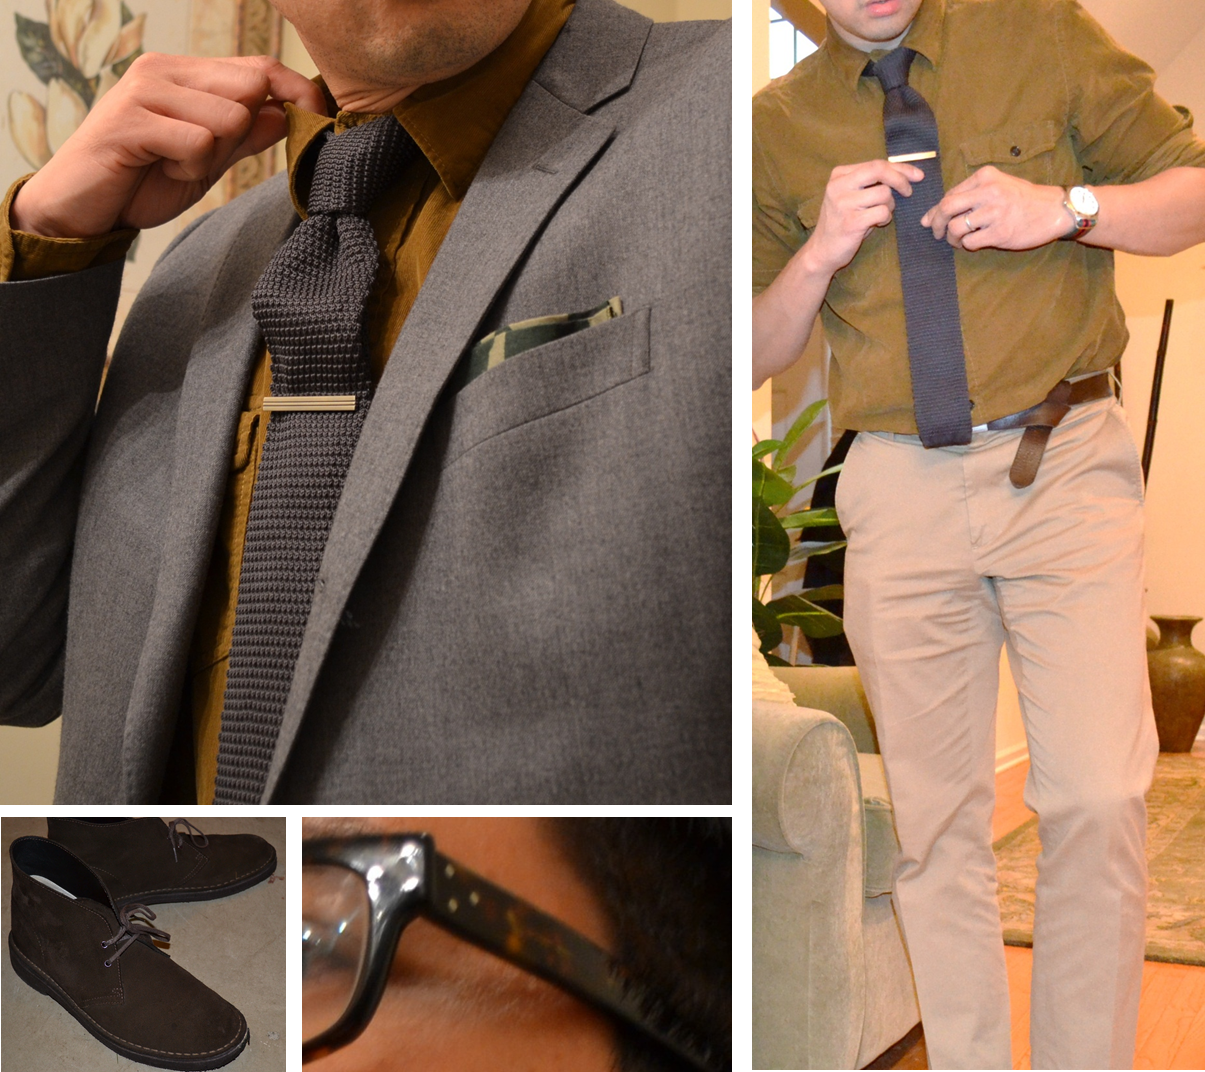 funkypresident :     Kit inspired by (ok, liberally stolen from) a mannequin I saw at J. Crew last week.   I like Frank & Co.'s philosophy of mixing tailored and informal, and otherwise clashing unorthodox pieces.   Mr. Mannequin had a washed caramel shirt, mine is a soft fine wale cord, which complemented the texture of the knit tie. Even with the jacket off, the flap pockets lend a casual air against the formality of the tie. And the lighter khakis balance the dark shades up top, and nod toward the springseason.     love all of this. spring fashion at its finest.